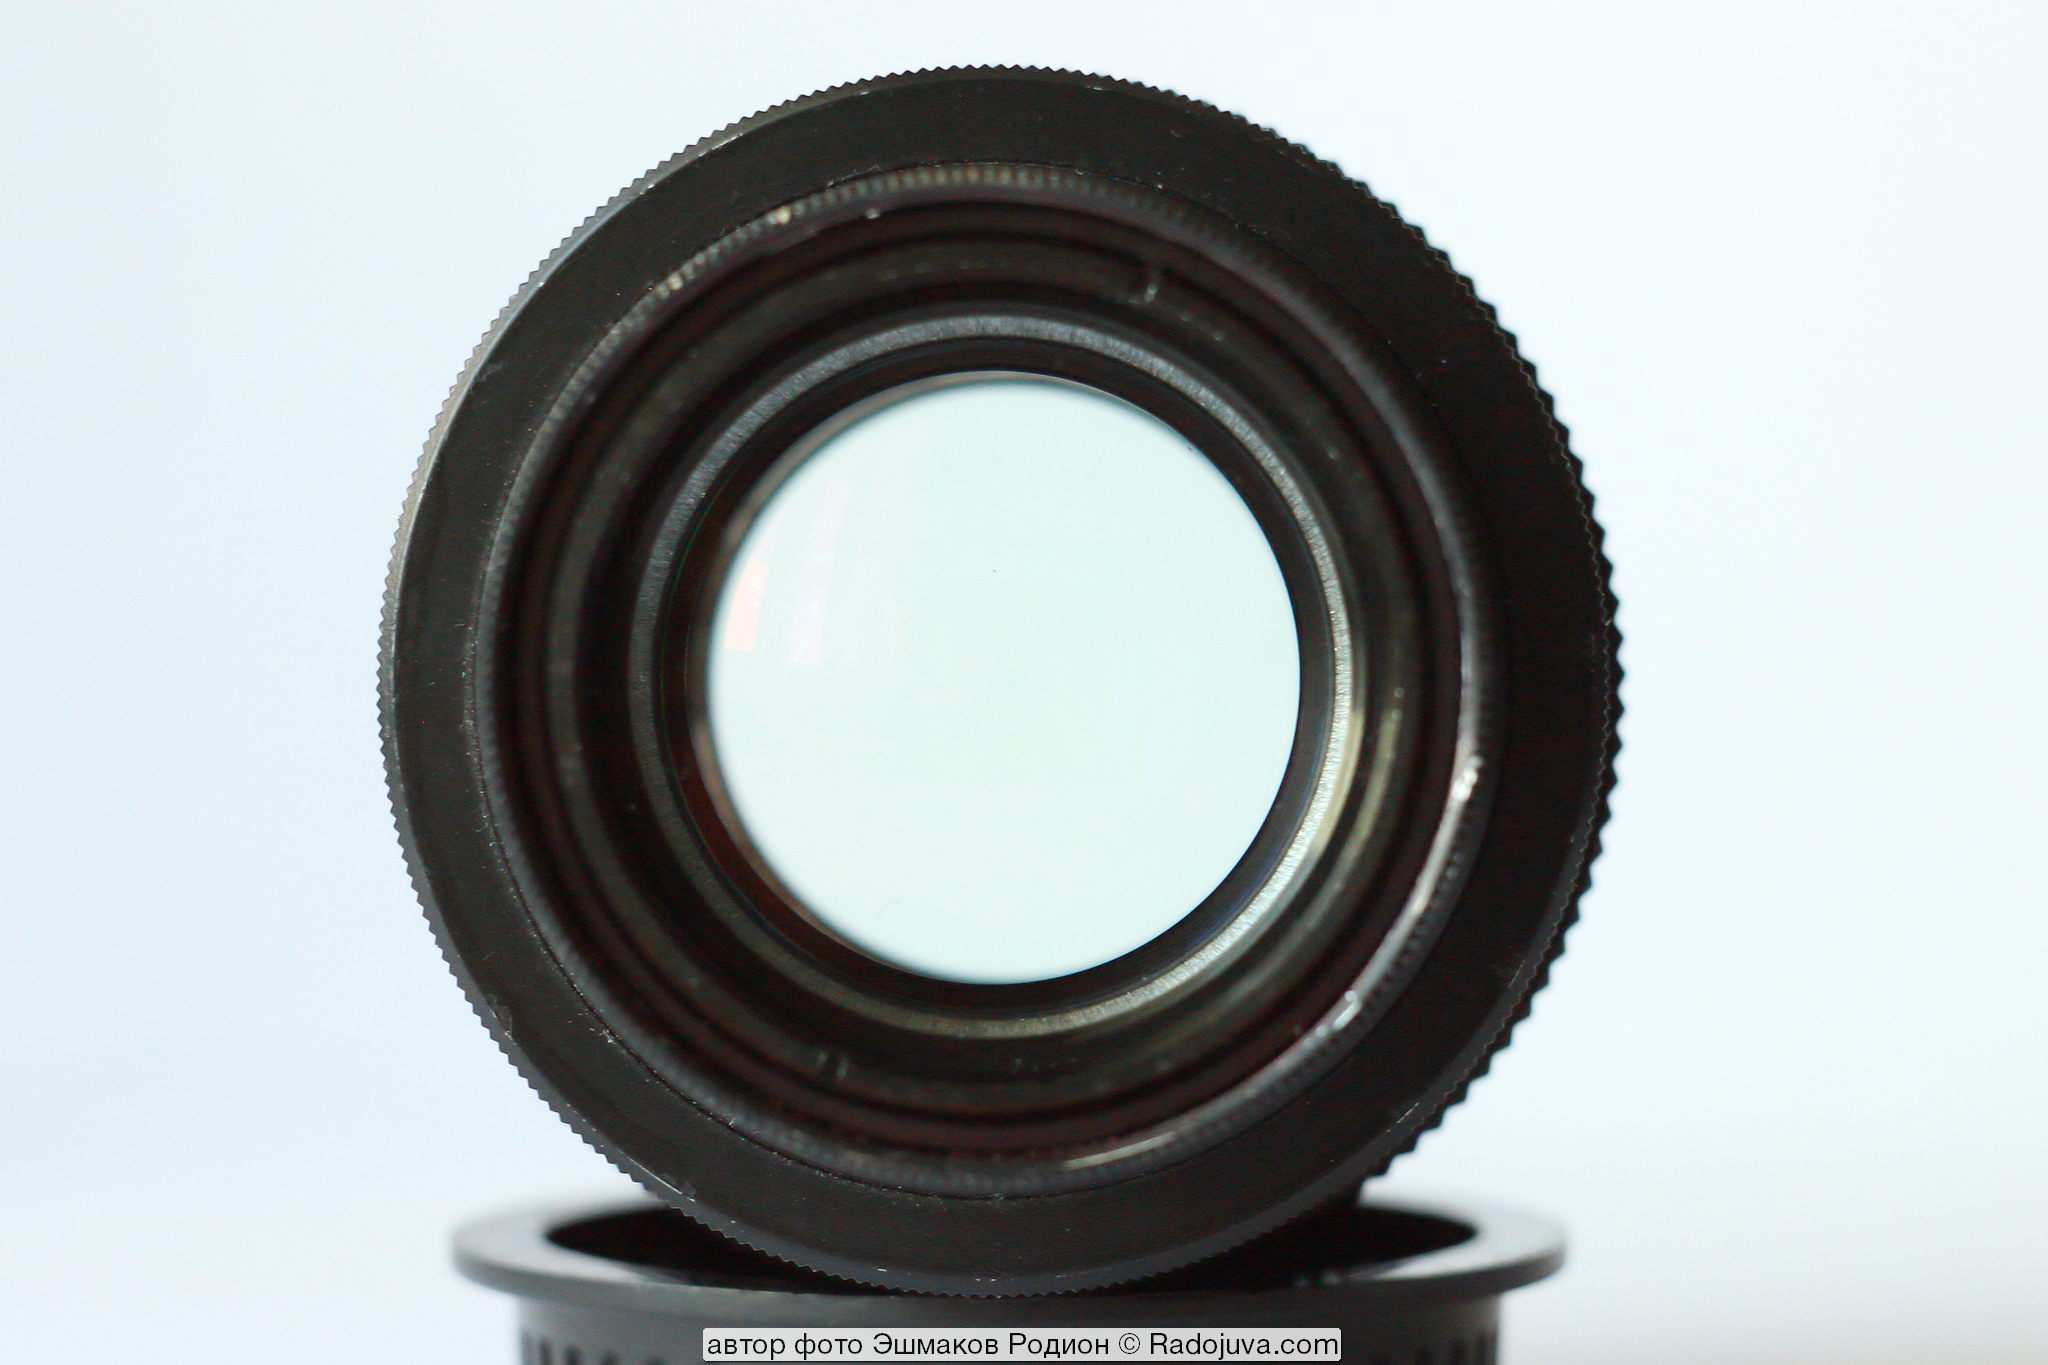 View of the converted lens F = 137